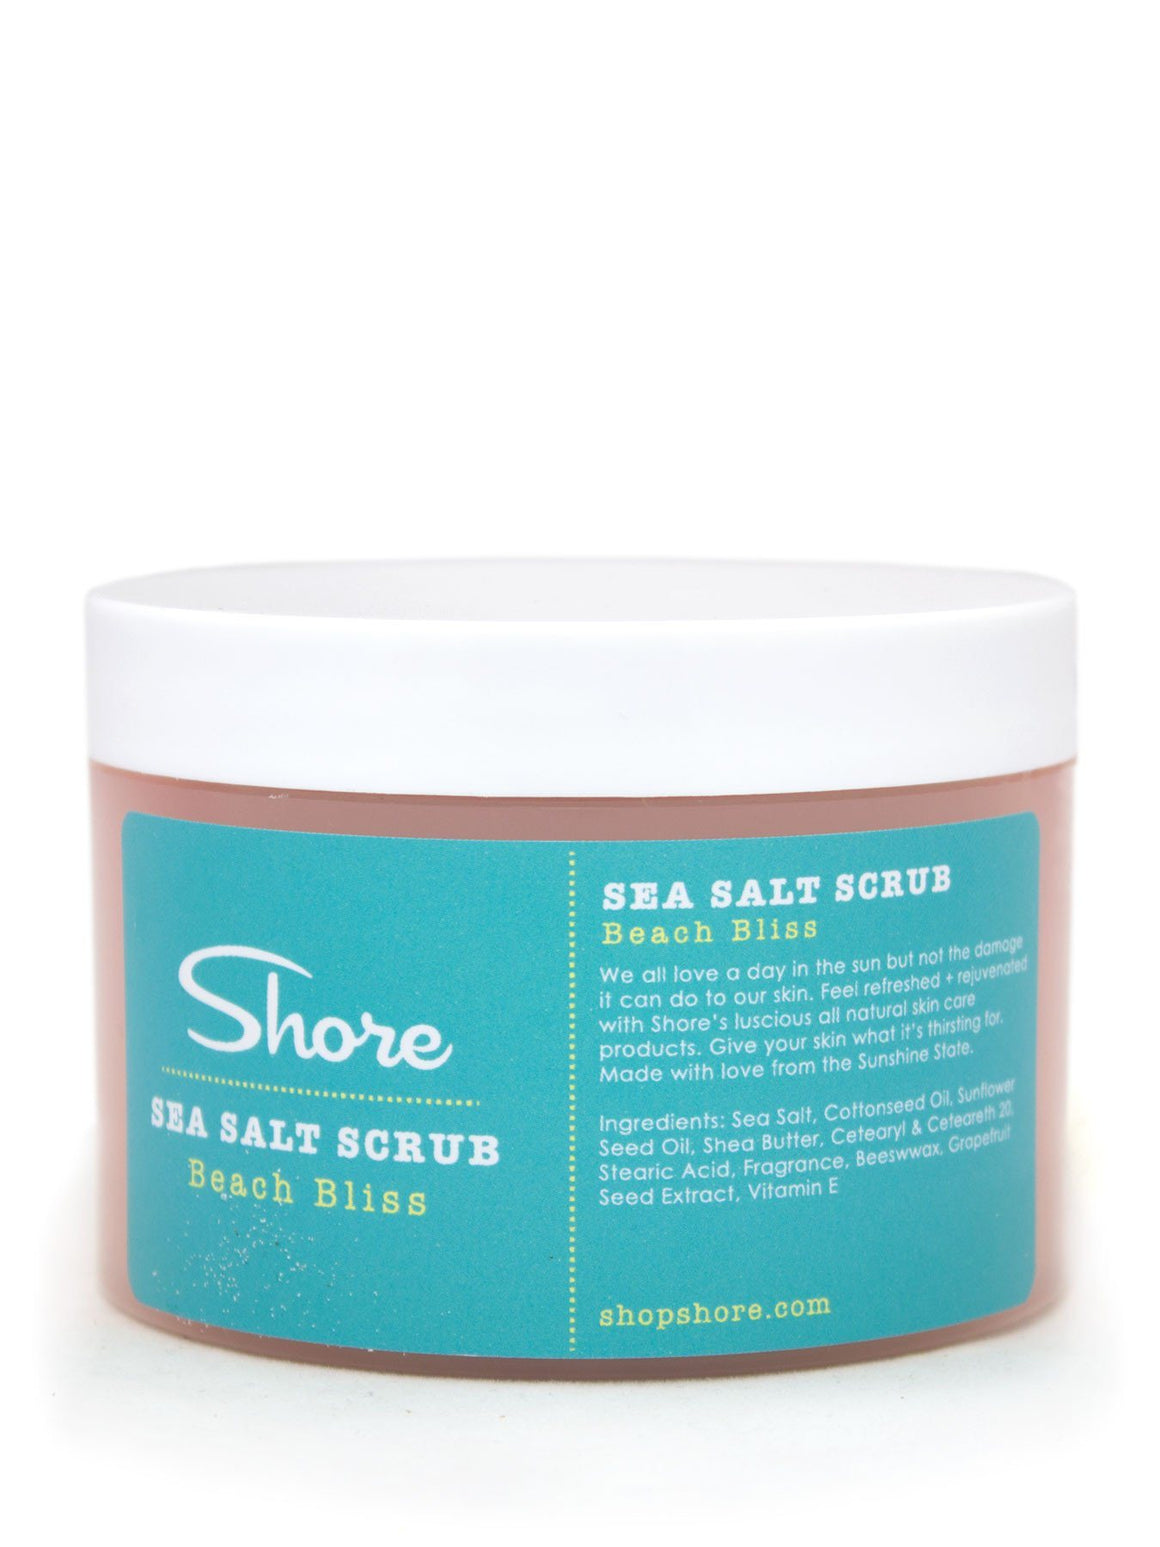 Beach Bliss Sea Salt Scrub